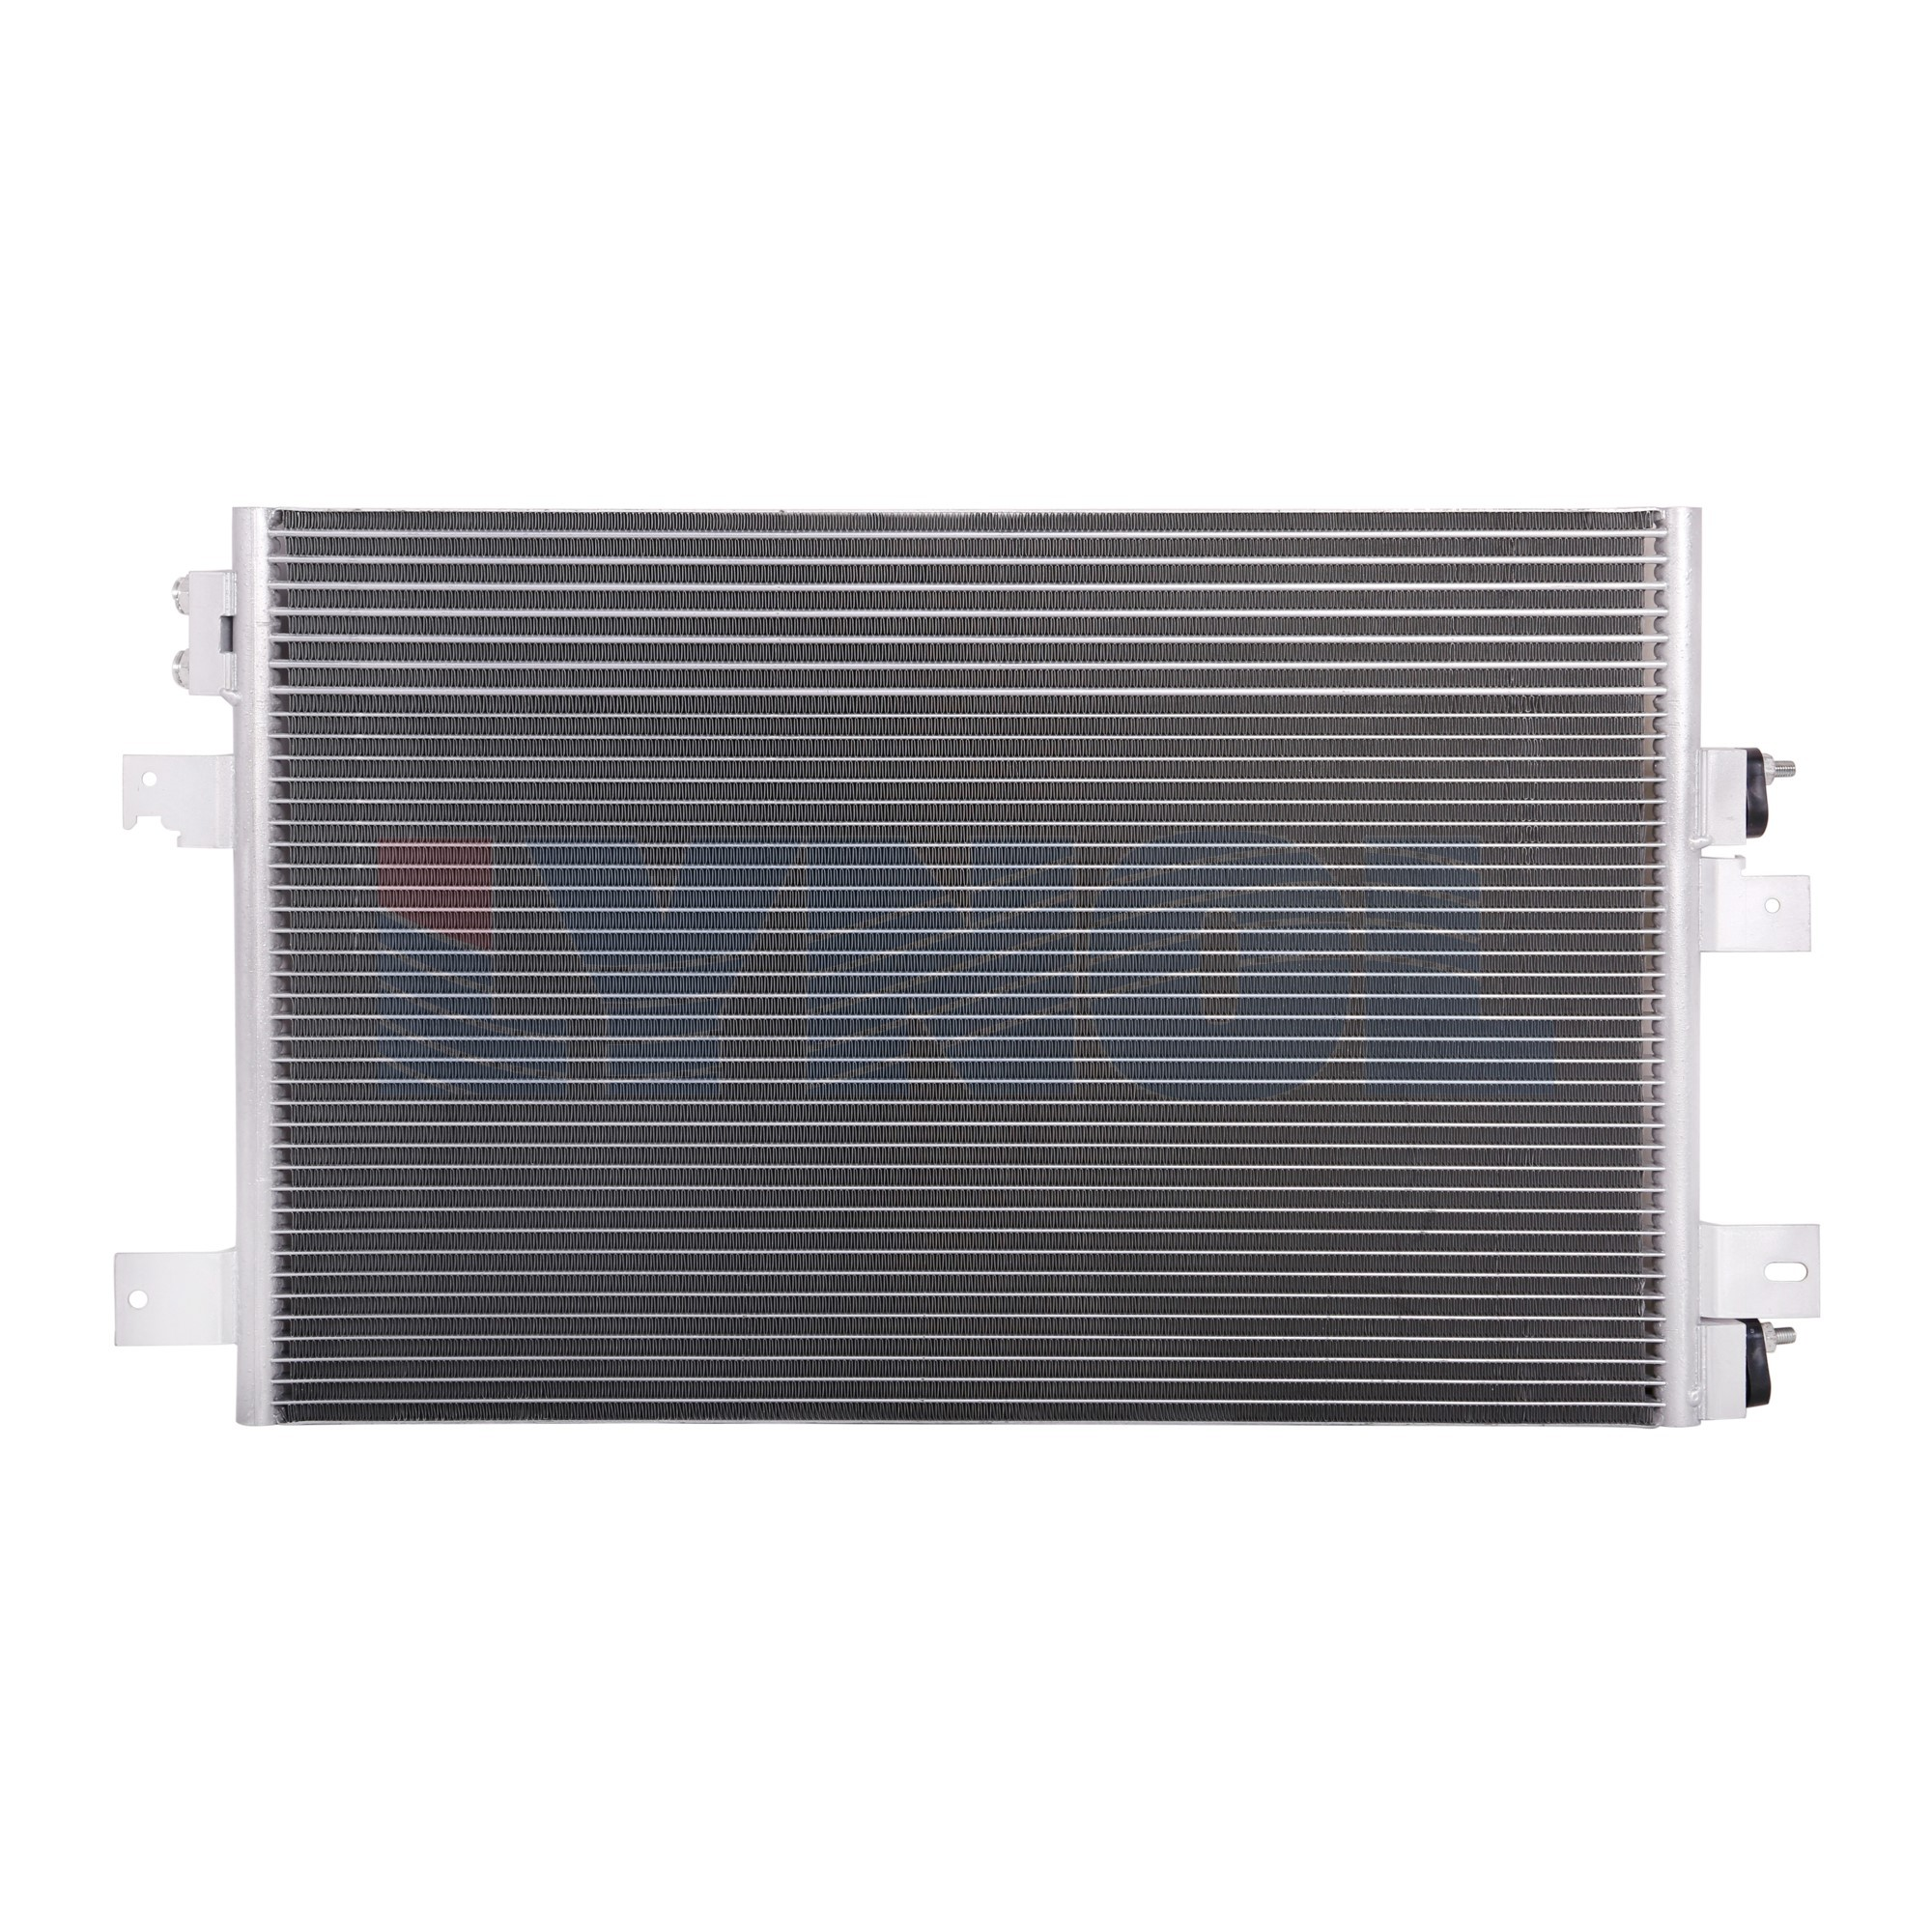 AC3586 -  AC Condensers   - 07-14 Dodge Avenger/Caliber, Chrysler Sebring/200, Jeep Compass/Patriot